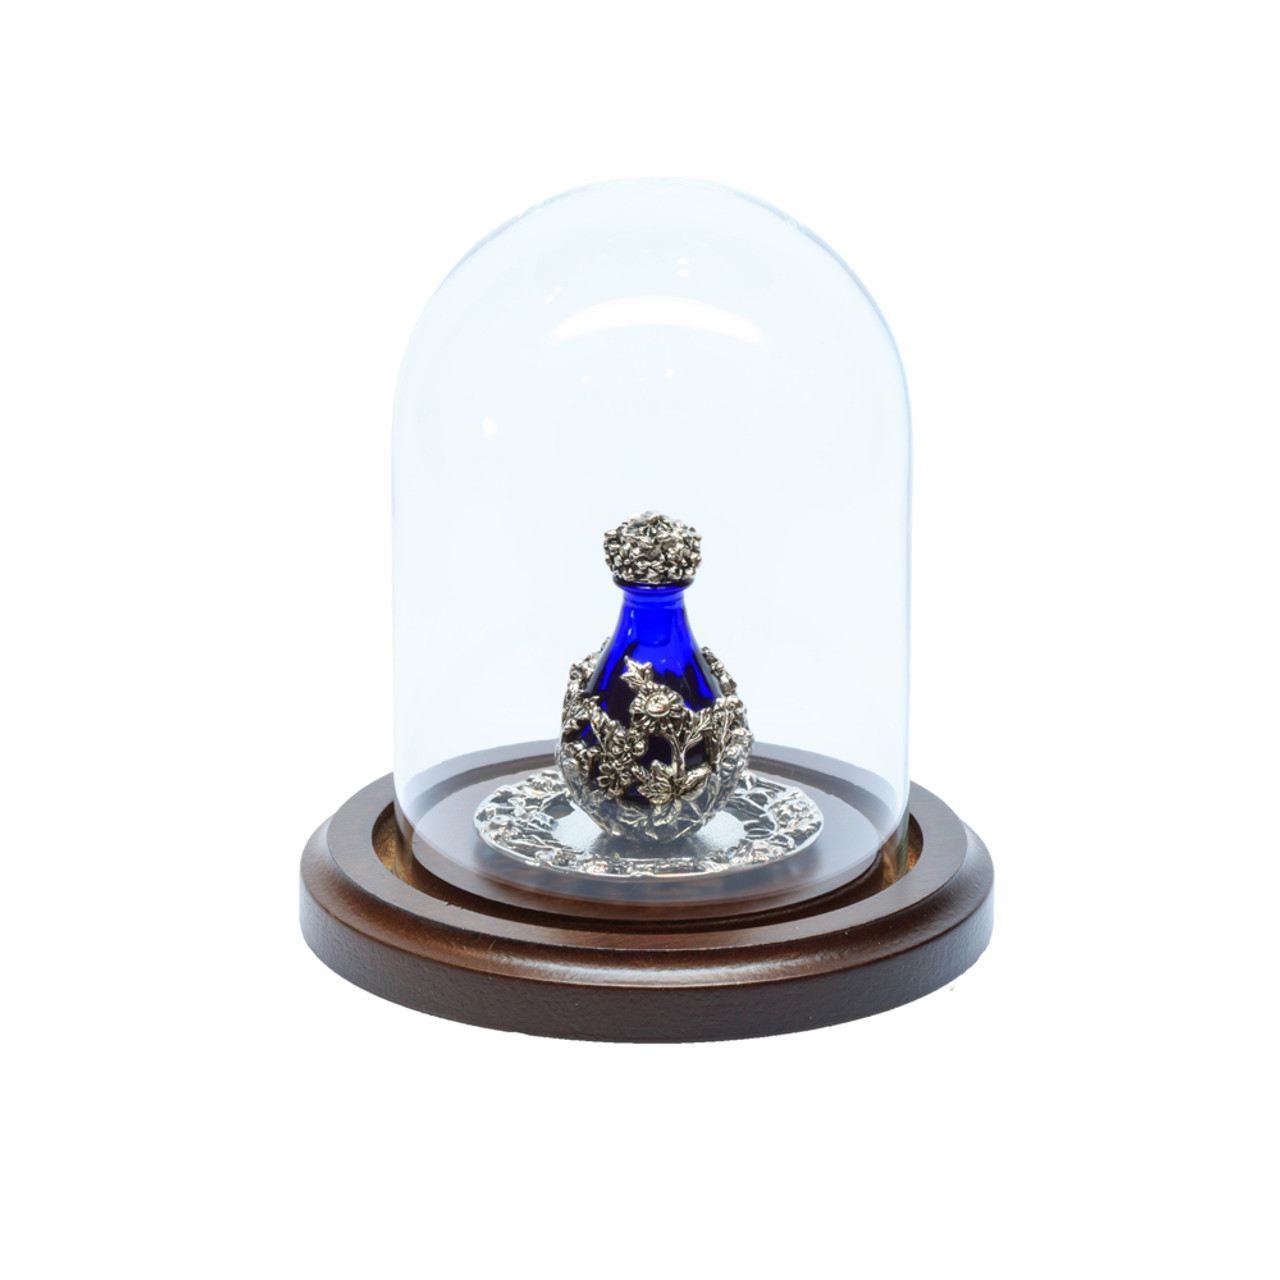 "Glass Maxi Dome with Walnut Base - 3"" D x 4"" H - shown with Optional Silver with Blue Glass Victorian Tear Bottle and with Optional 2"" Silver Tray with Filigree Rim - Both Sold Separately"